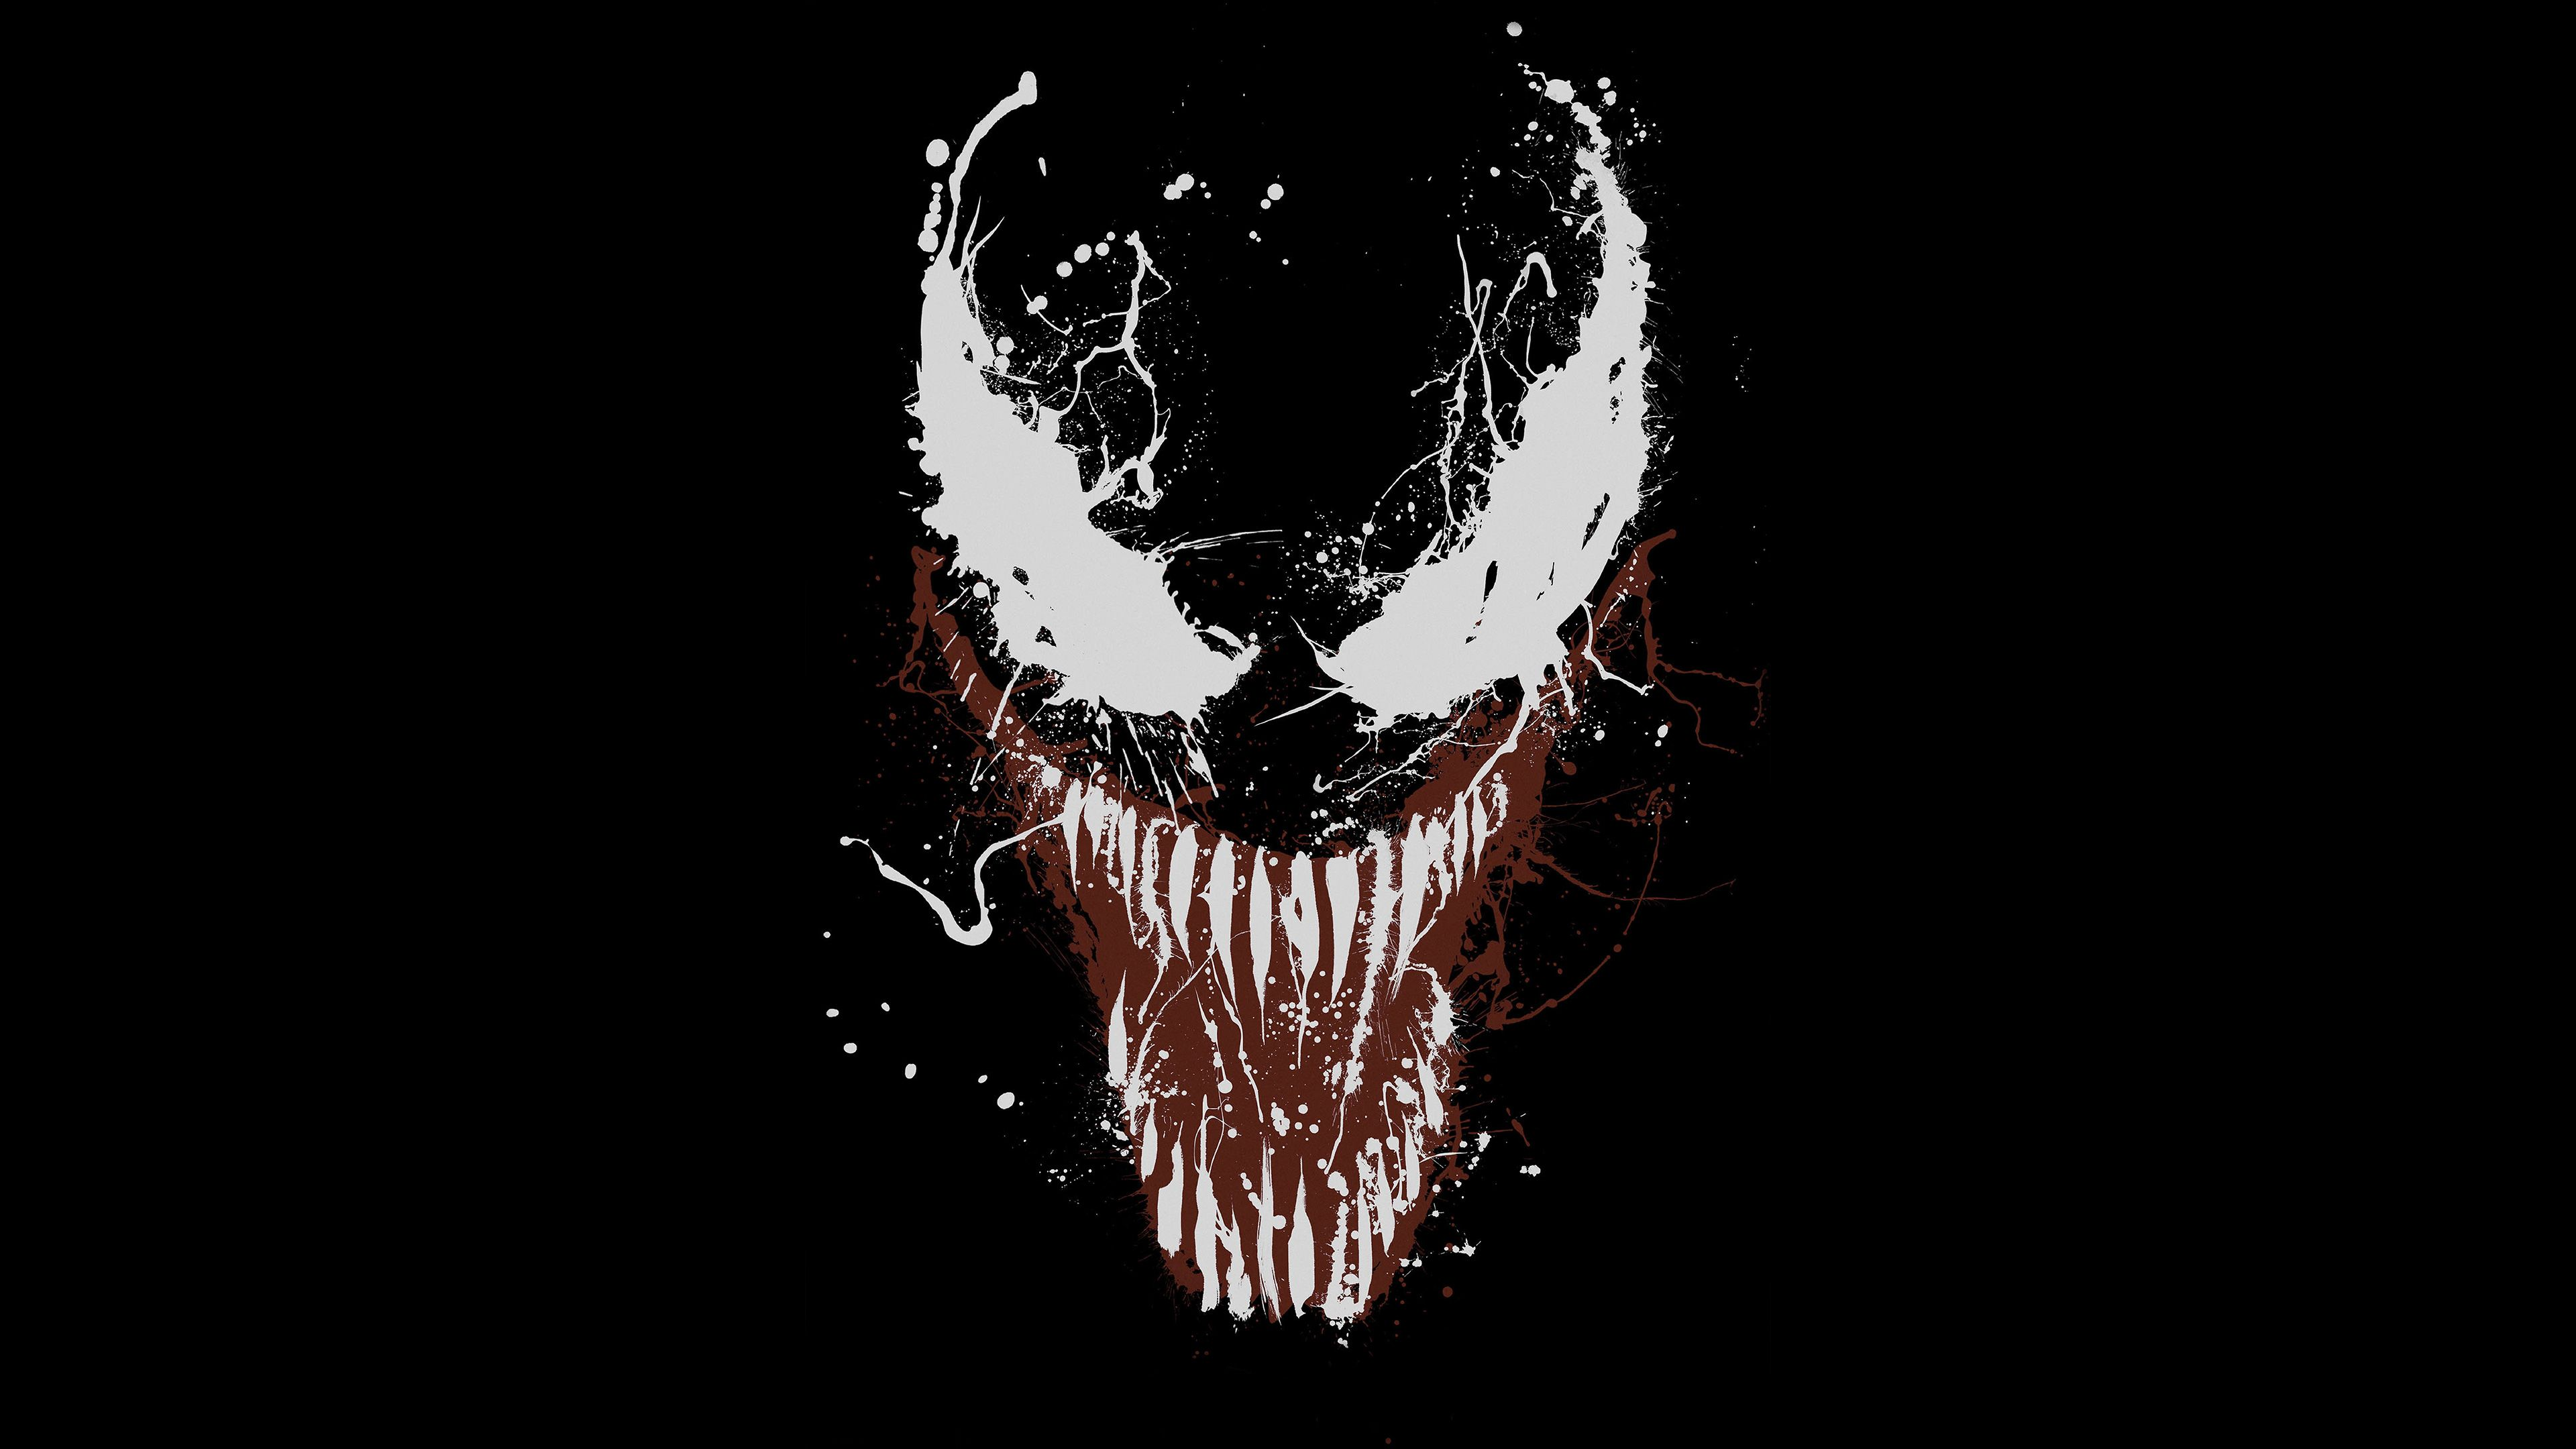 Venom Movie Poster 2018 Venom Wallpapers Venom Movie Wallpapers Poster Wallpapers Movies Wallpapers Android Wallpaper Venom Movie Hd Wallpapers For Laptop